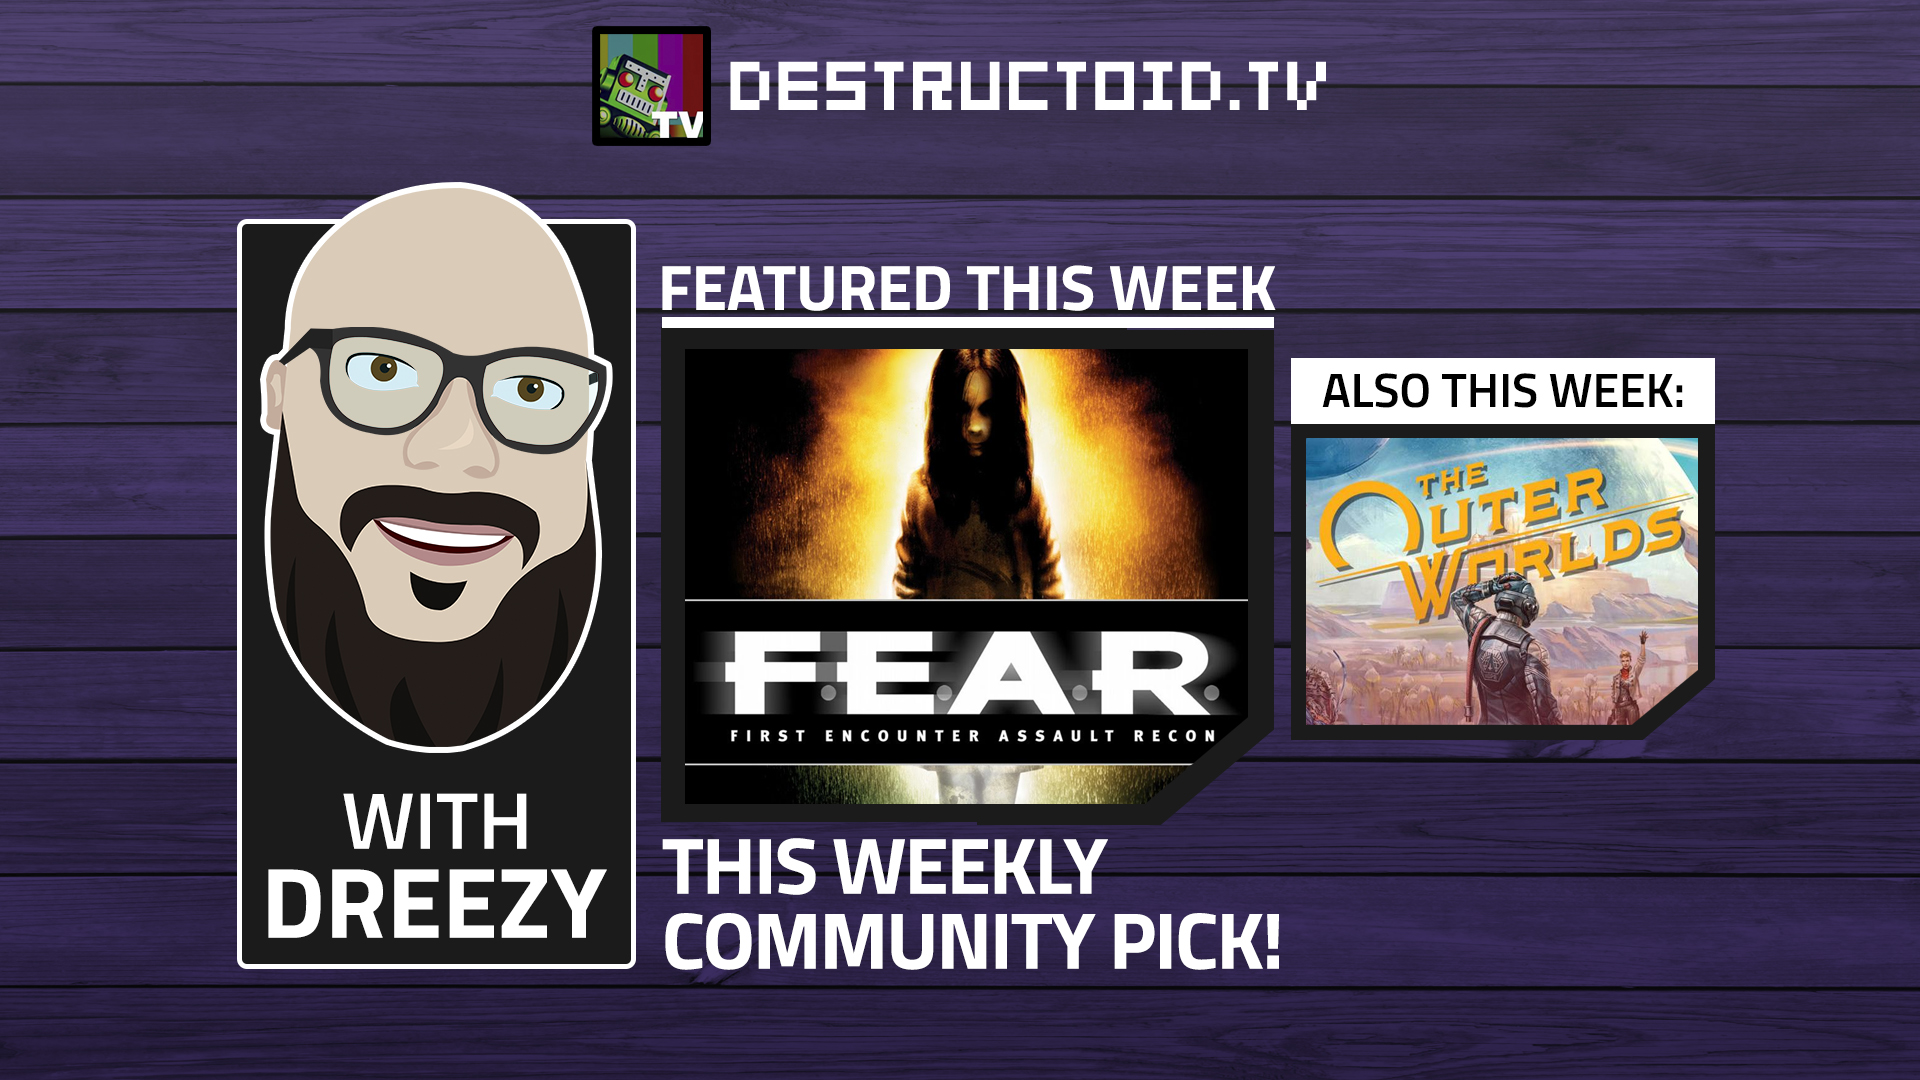 We're live again on Twitch this week with F.E.A.R. and more! screenshot